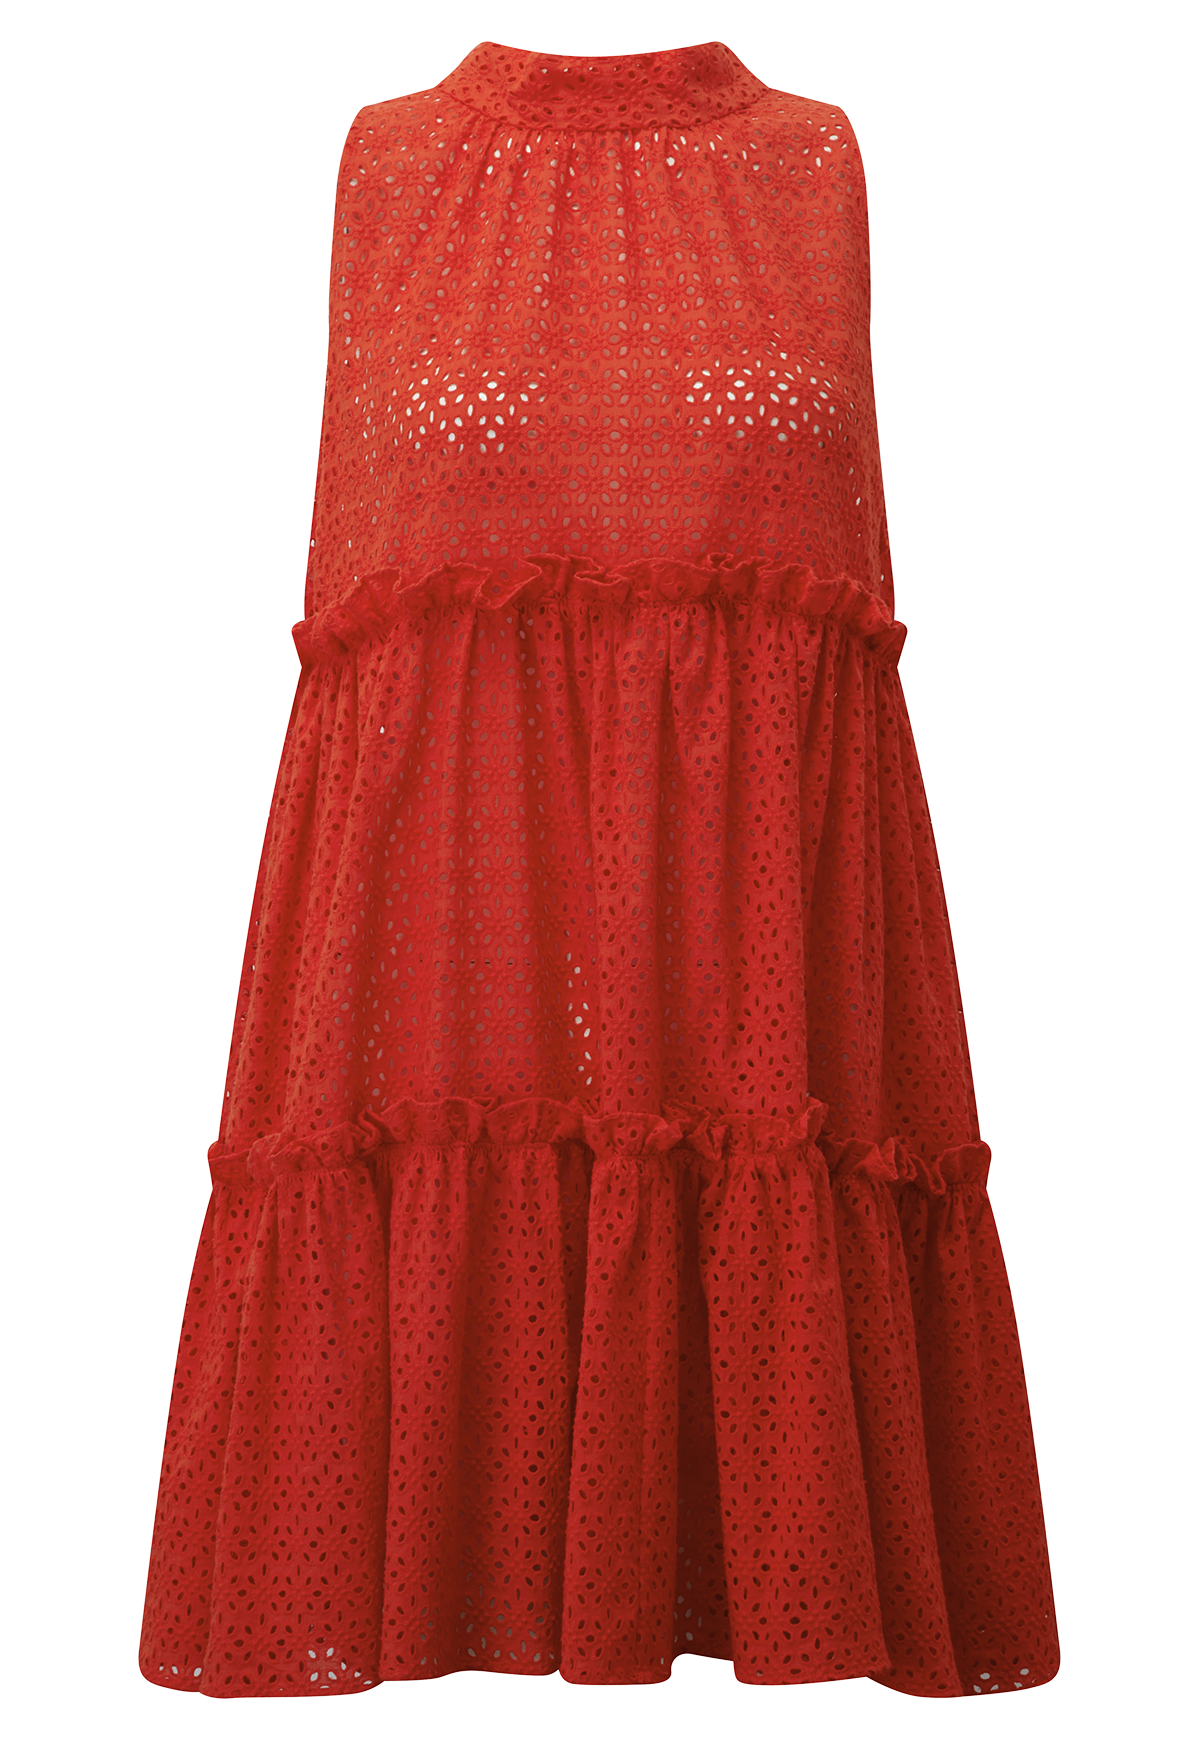 MINI RUFFLE TOMATO EYELET TIER DRESS